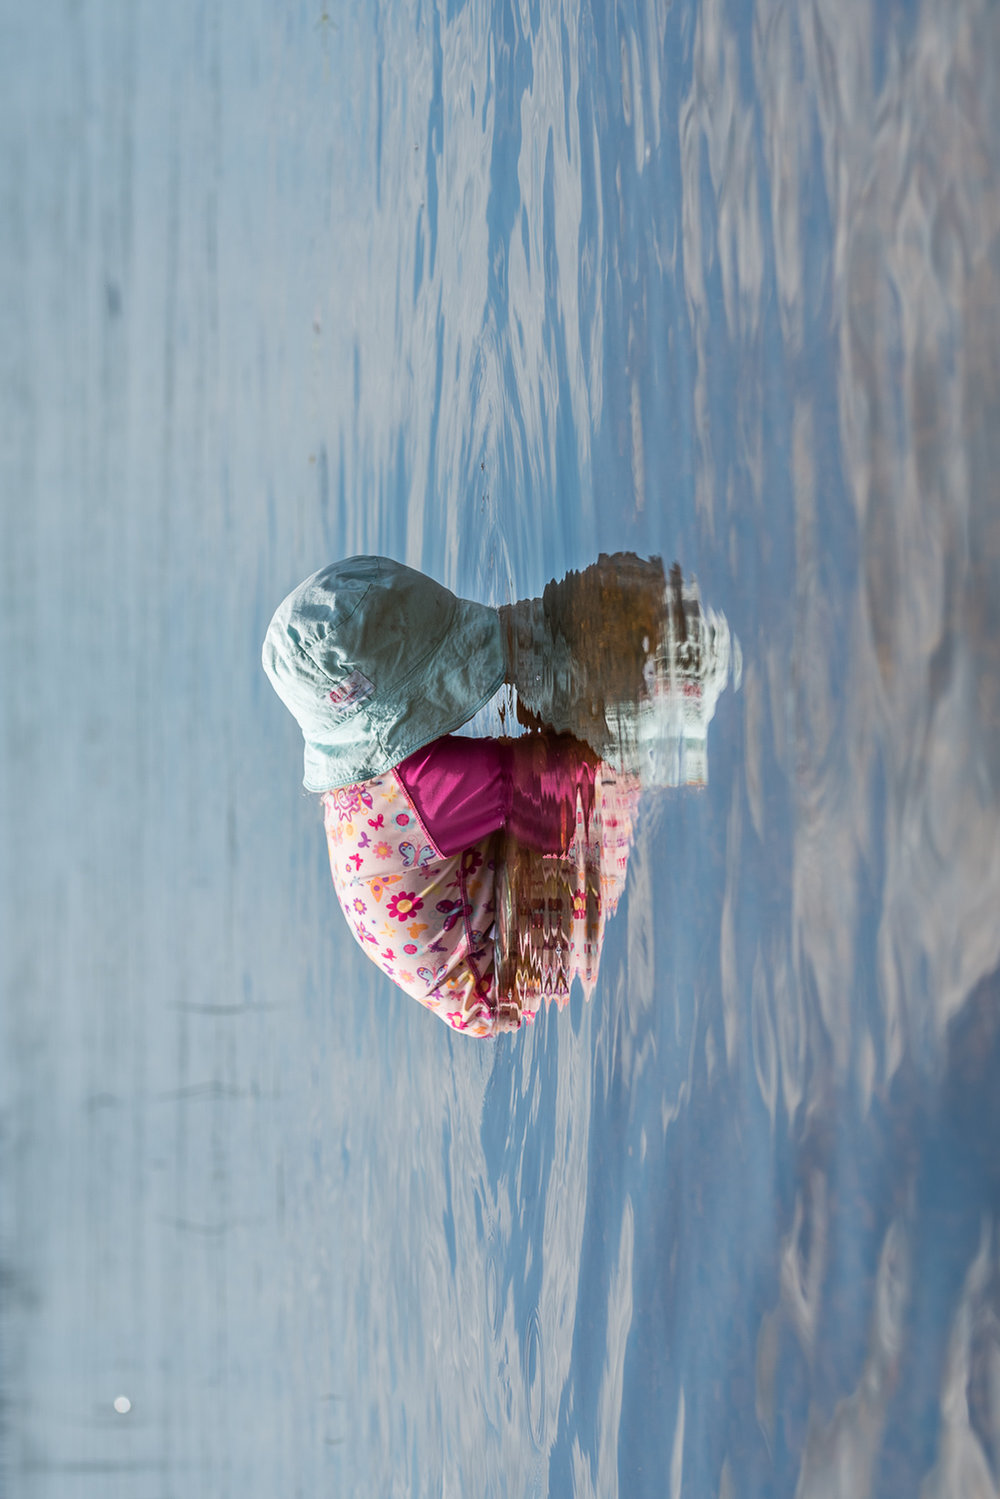 Toddler in a blue sun hat and a pink UV shirt with butterflies and flowers with her face in the blue lake water and her reflection which looks like a heart.